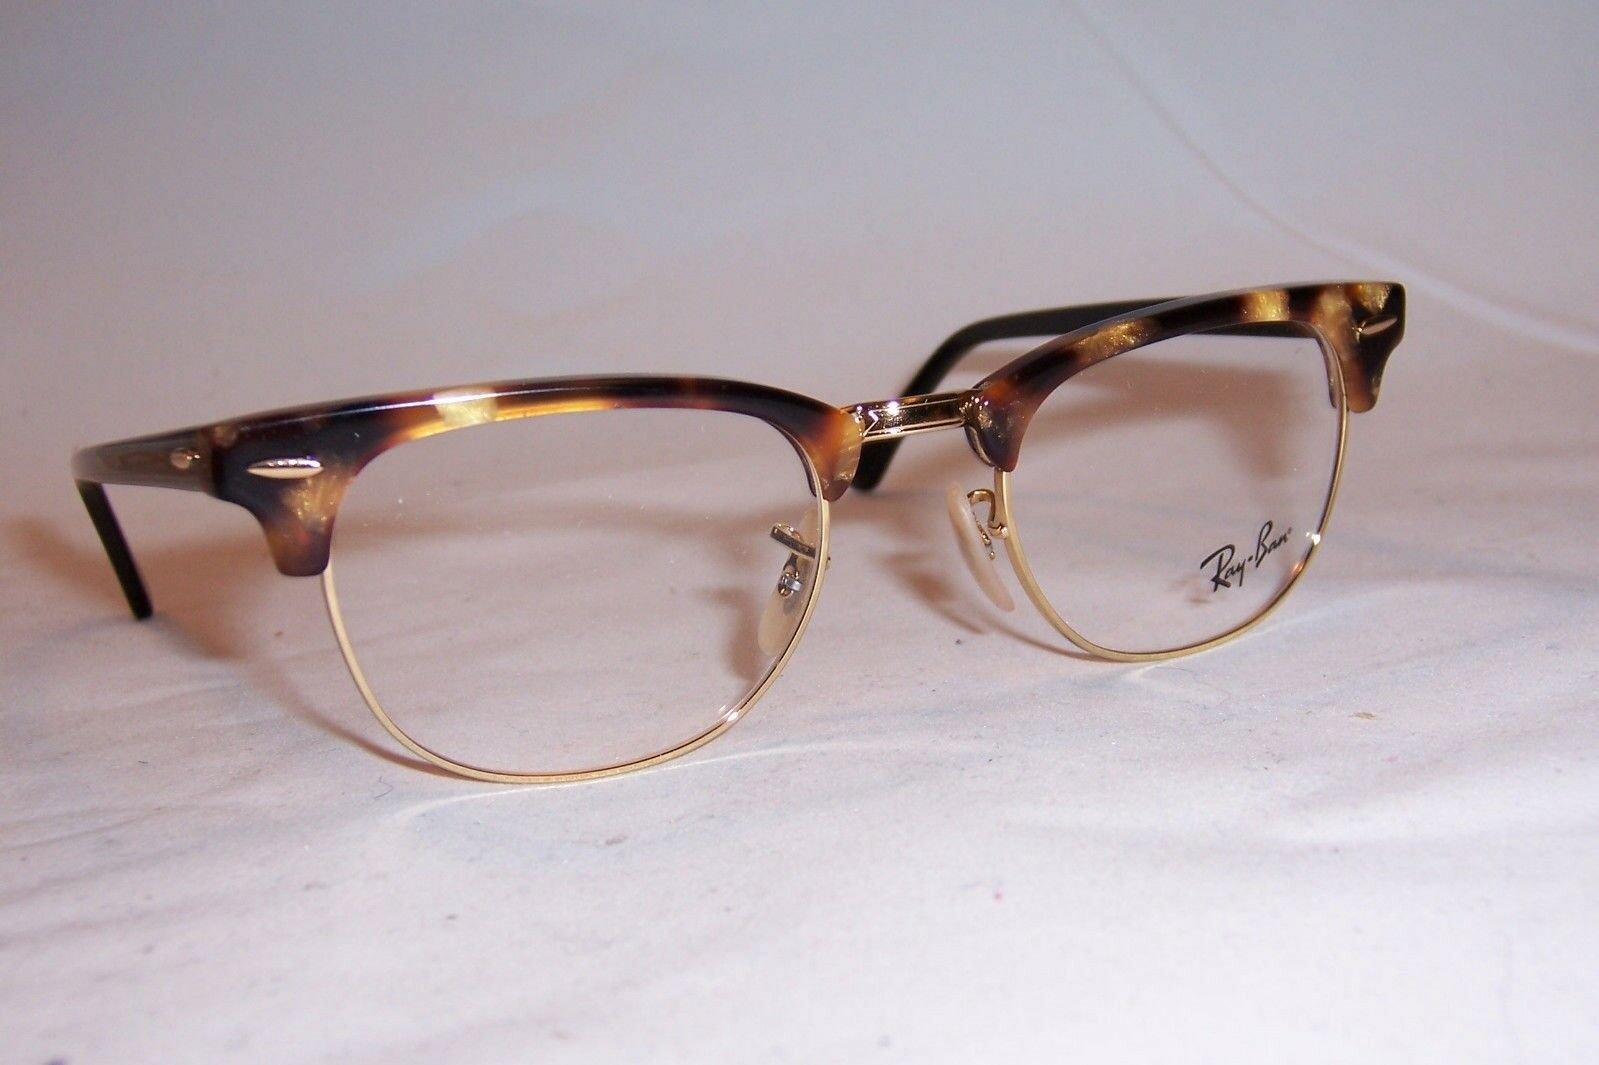 57beacd6beded ... EAN 8053672357240 product image for Authentic Ray Ban Rx 5154  Clubmaster 5494 Brown Havana Gold Eyeglasses ...